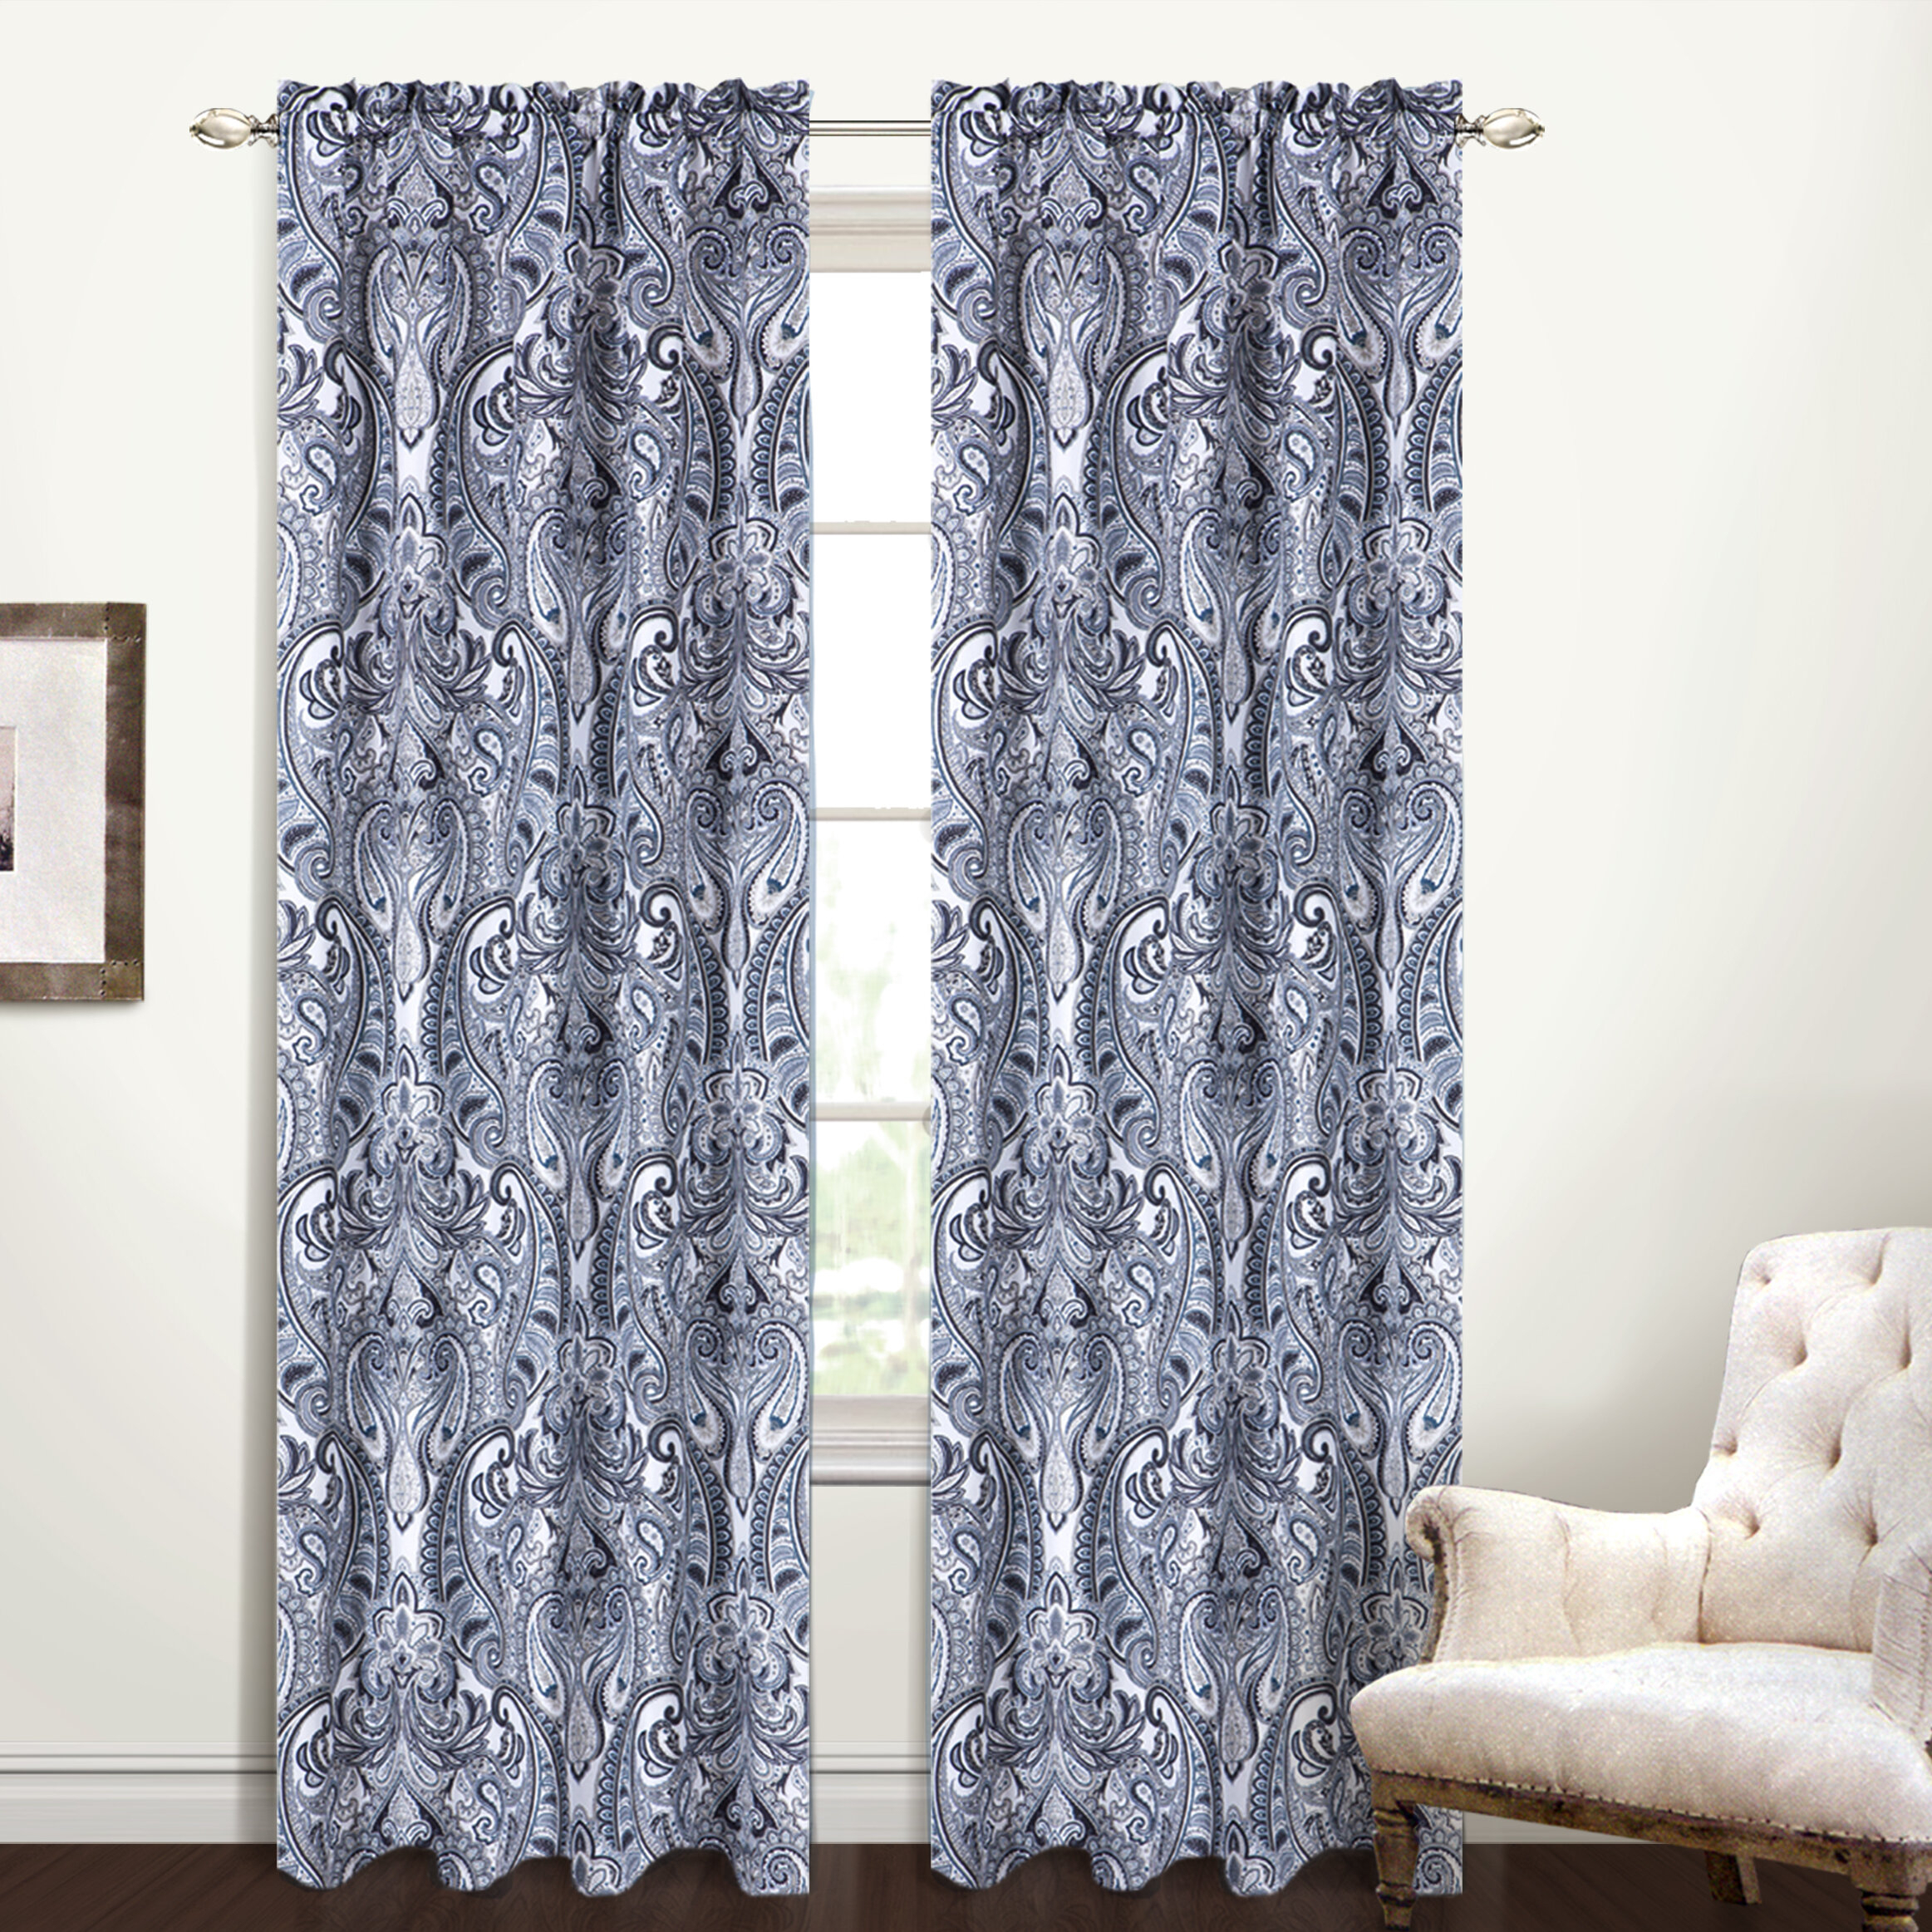 Strongsville Paisley Semi Sheer Rod Pocket Single Curtain Panel Pertaining To Marine Life Motif Knitted Lace Window Curtain Pieces (View 14 of 20)